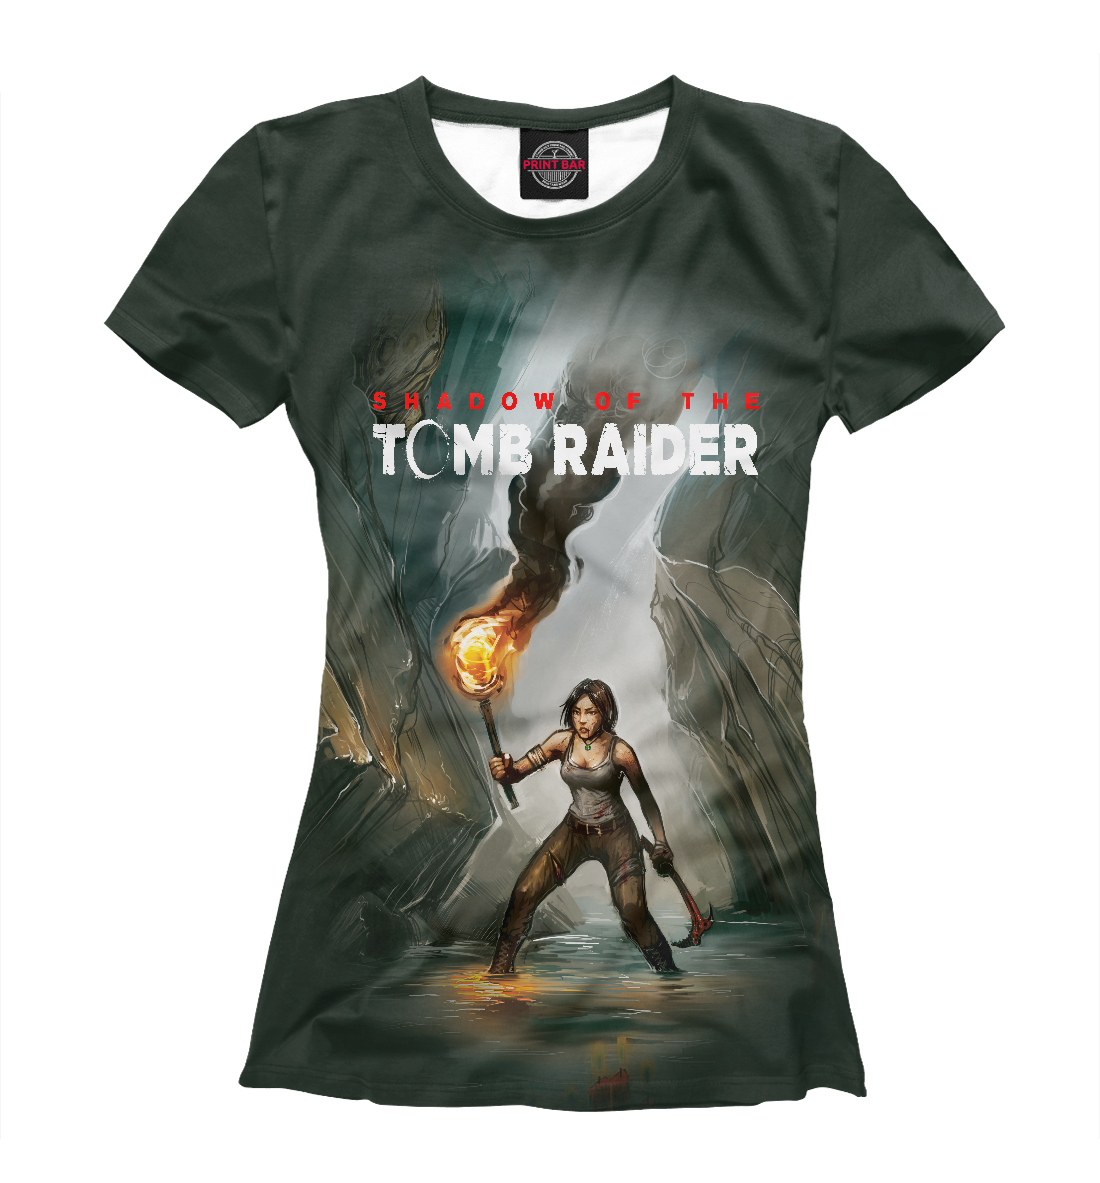 Купить Tomb Raider, Printbar, Футболки, TBR-834587-fut-1